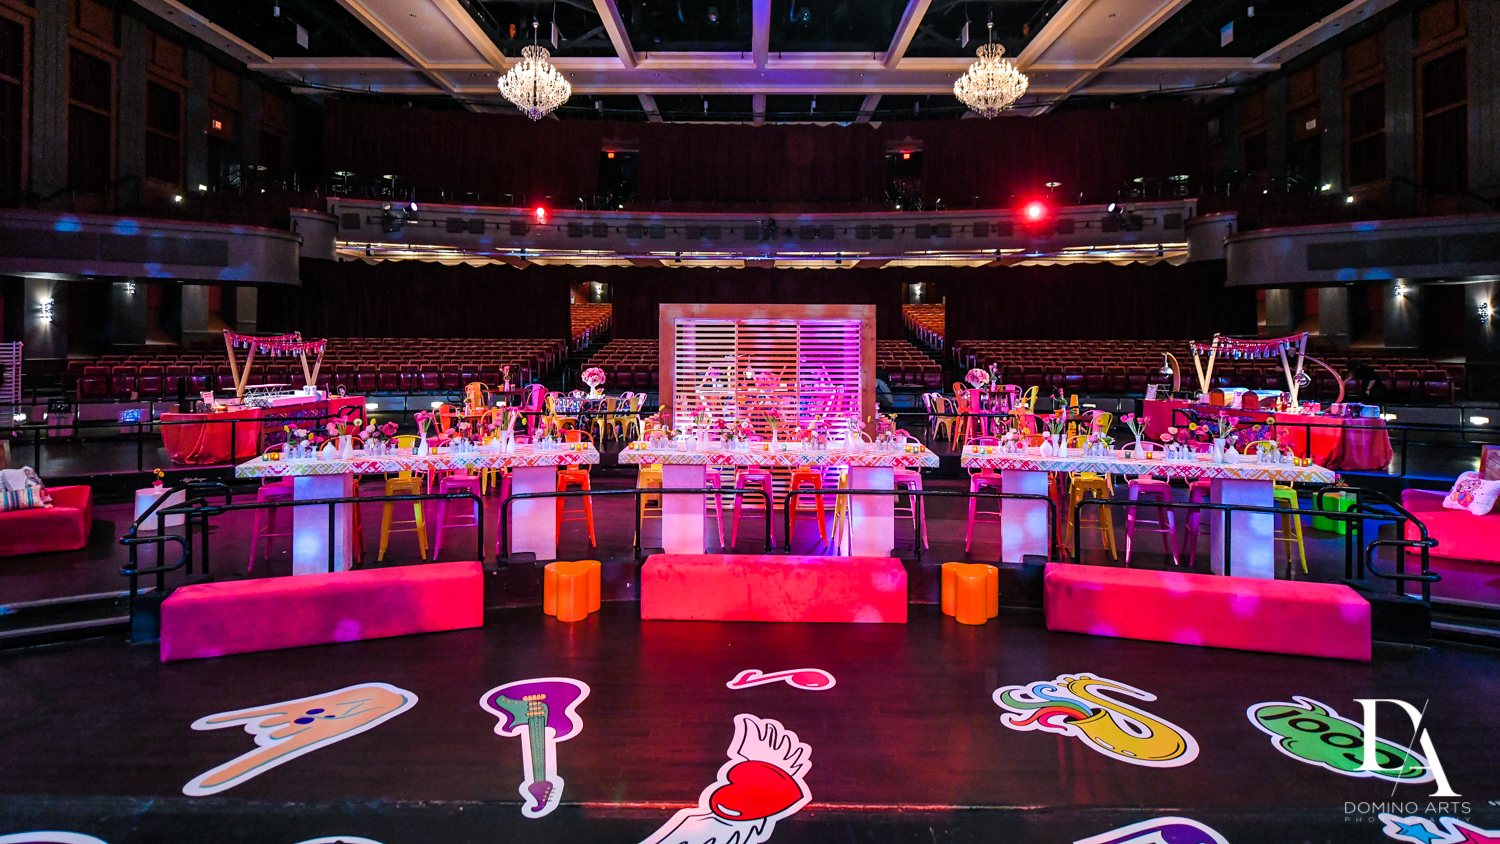 music decor at Music Festival Bat Mitzvah at The Fillmore Miami Beach by Domino Arts Photography